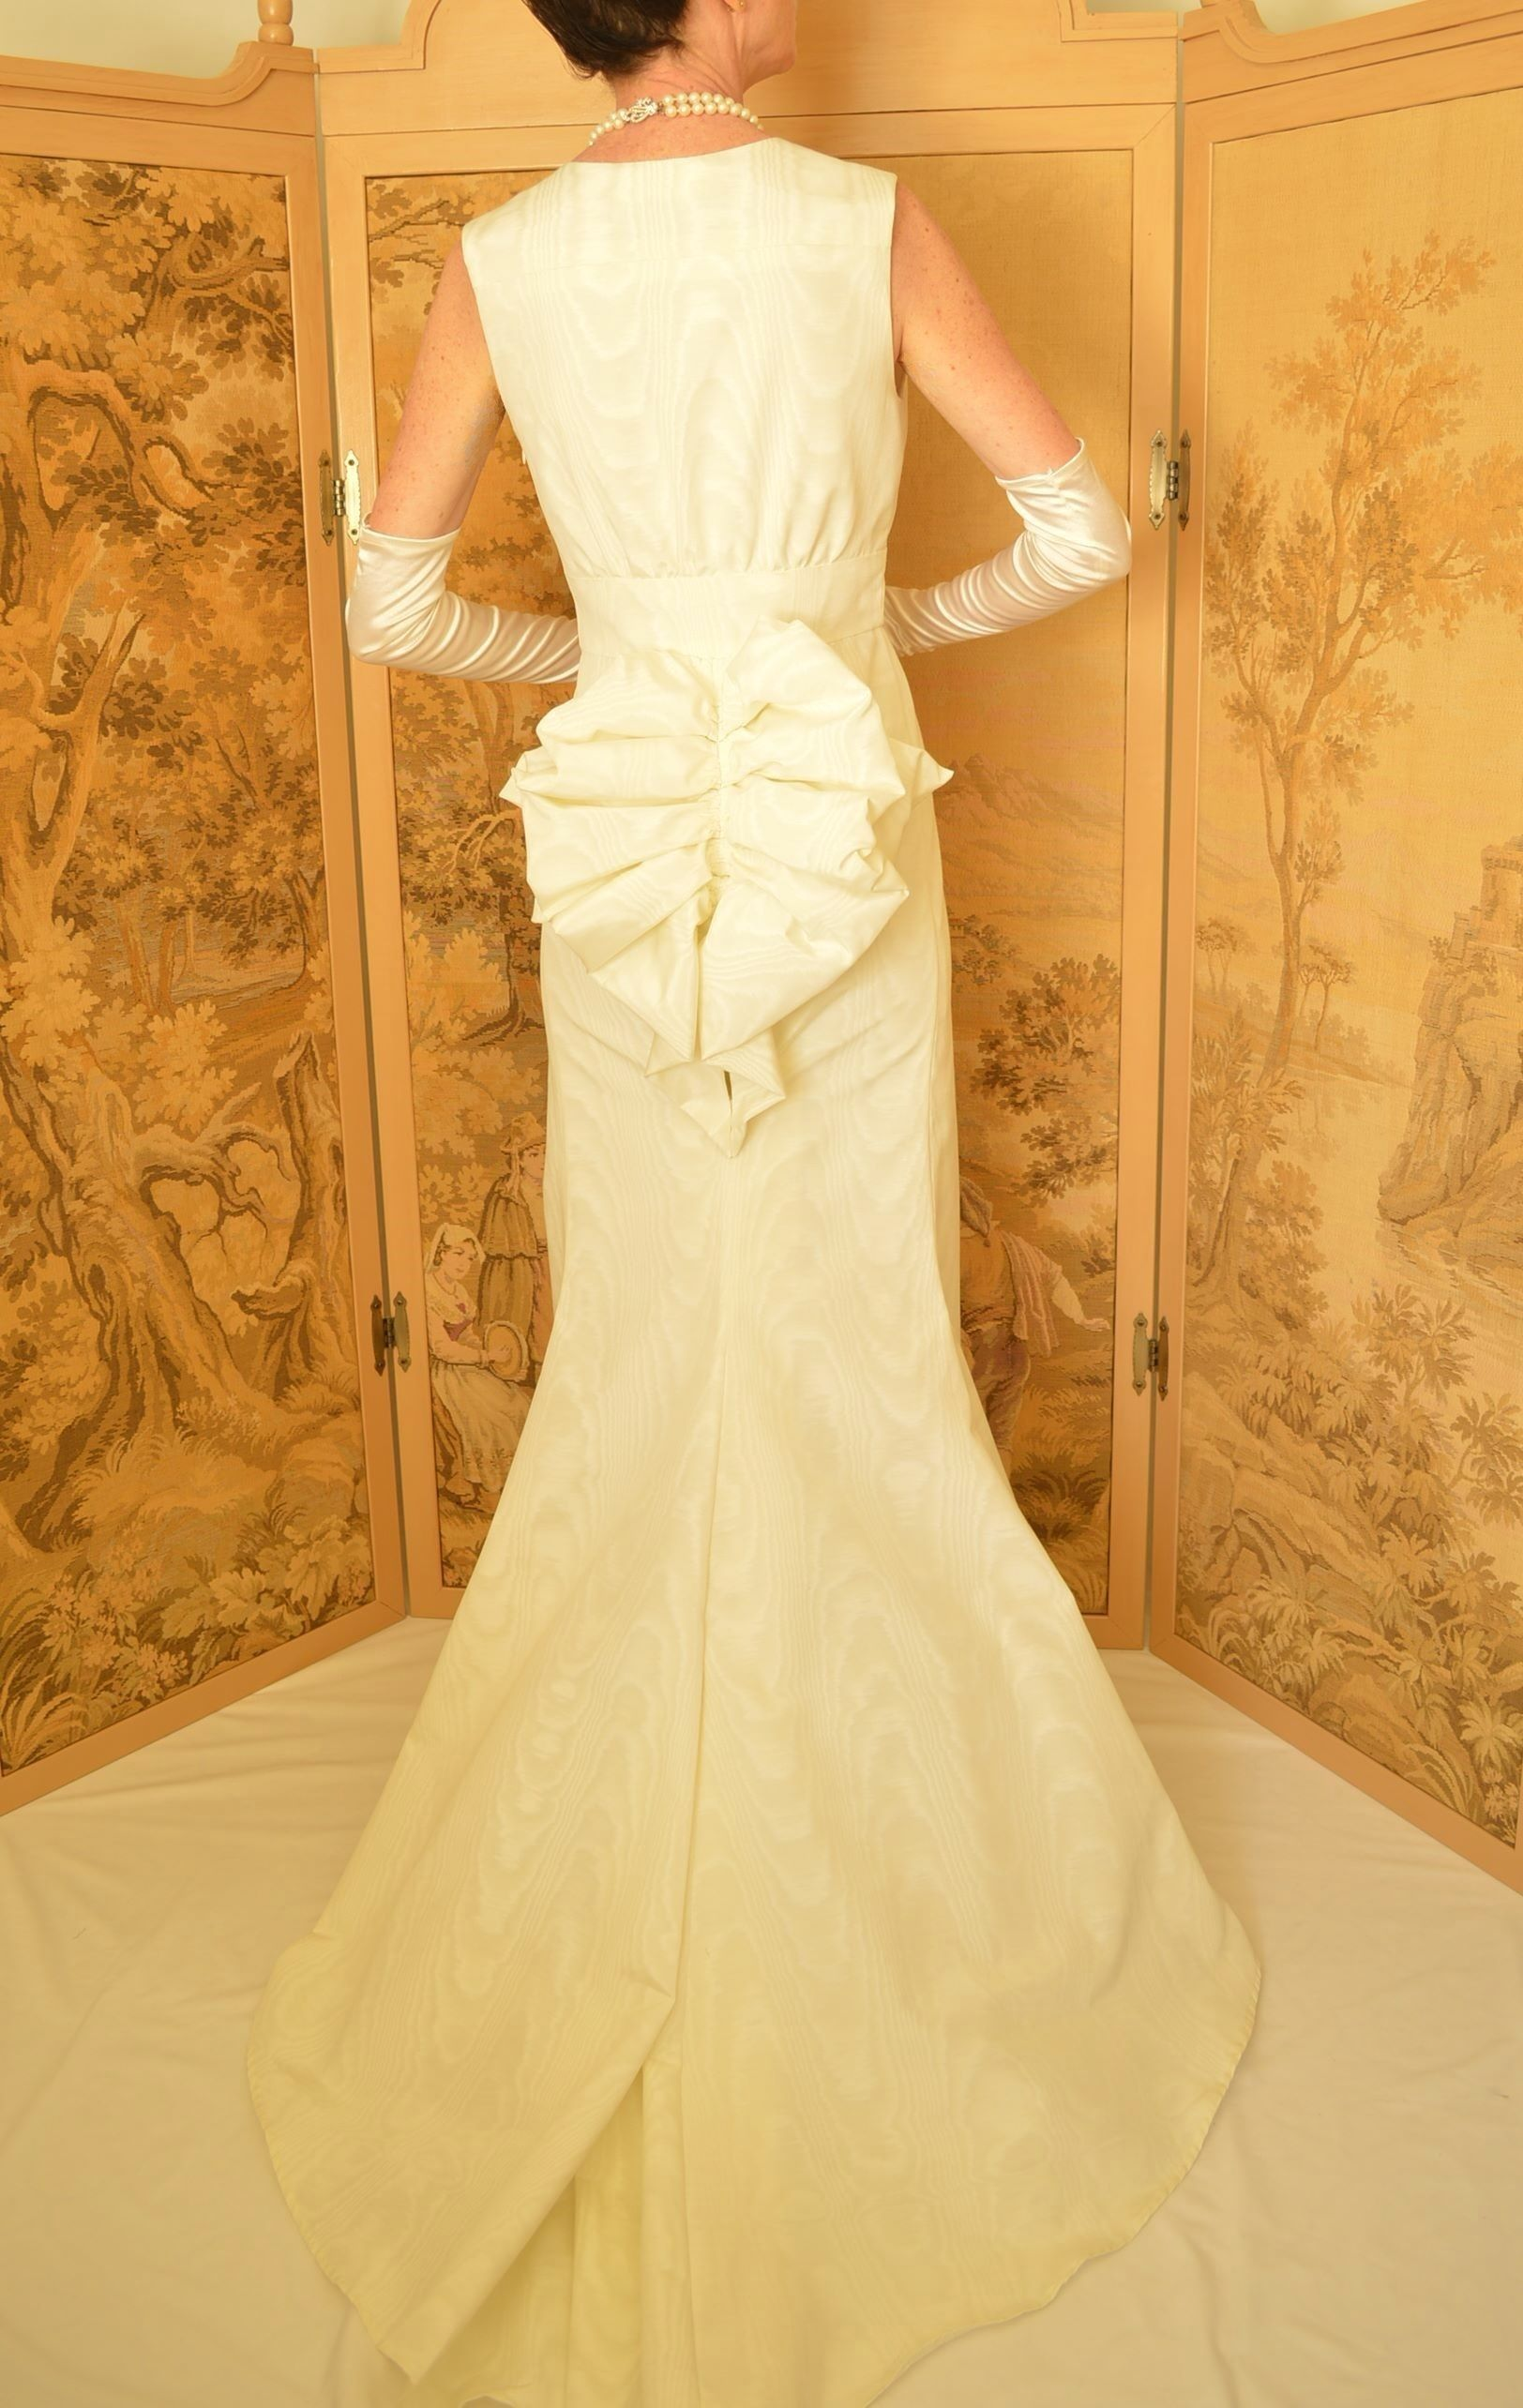 Back view of bustle wedding gown bustle wedding dress pinterest